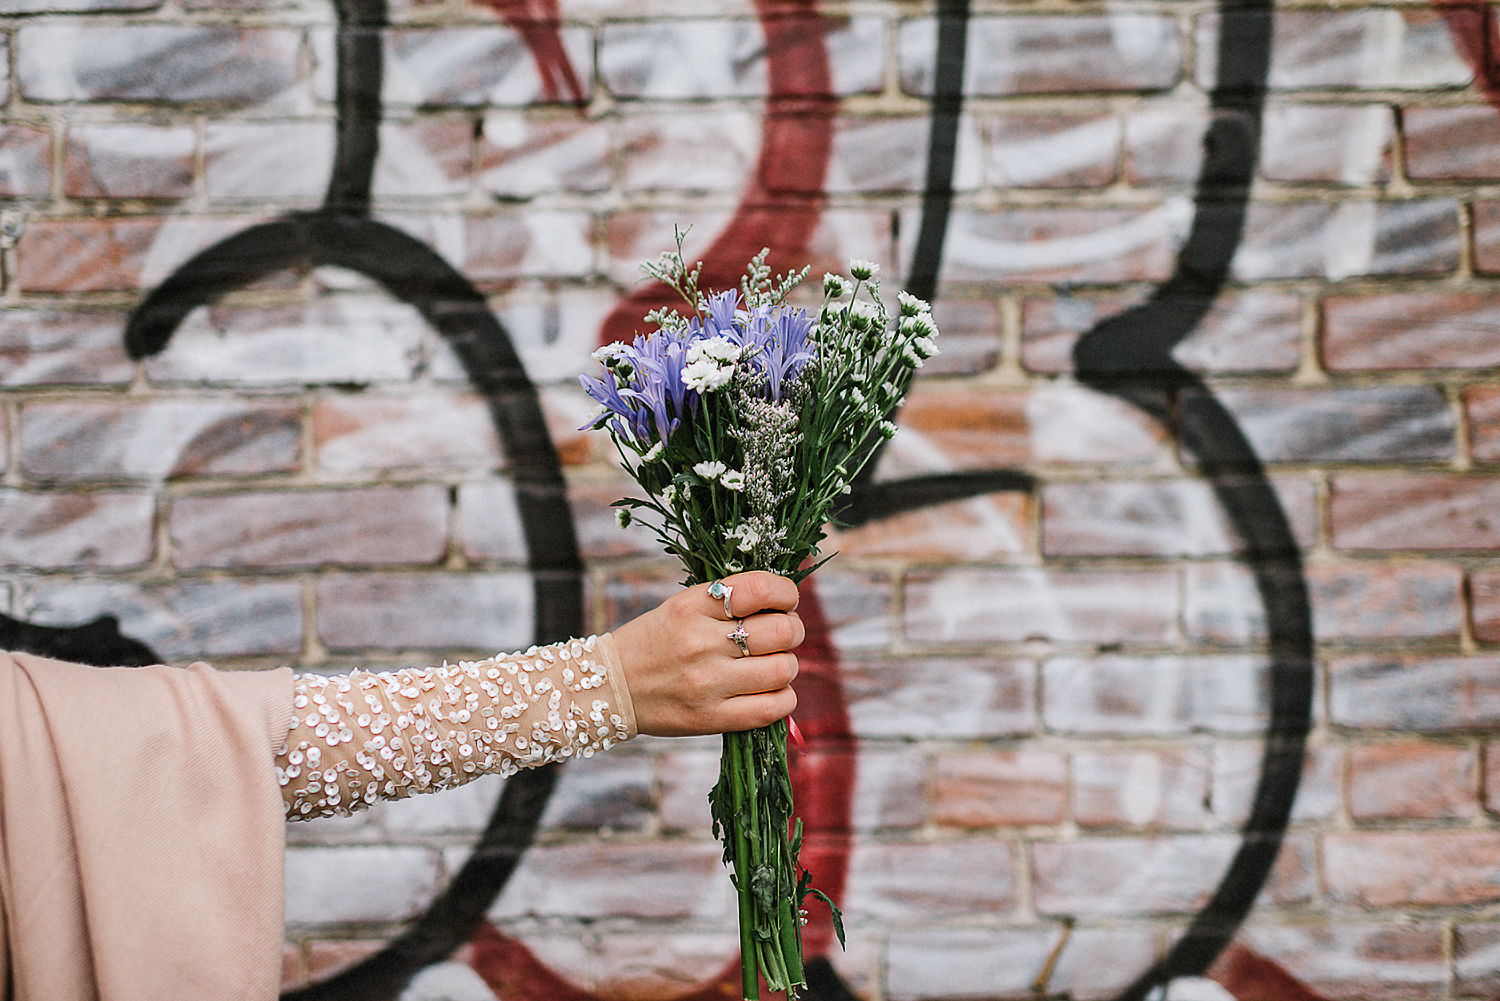 15-Toronto-City-Hall-Fall-Elopement-Indie-Altervatice-Urban-City-Bride-and-Groom_Fall-Colours-Riverdale-Downtown-Toronto-Best-Wedding-Photographers-Groom-Vintage-Suit-Candid-Portrait-Bride-and-Groom-Graffiti-Wall-Bouquet-DEtail-Bride-Hand.JPG